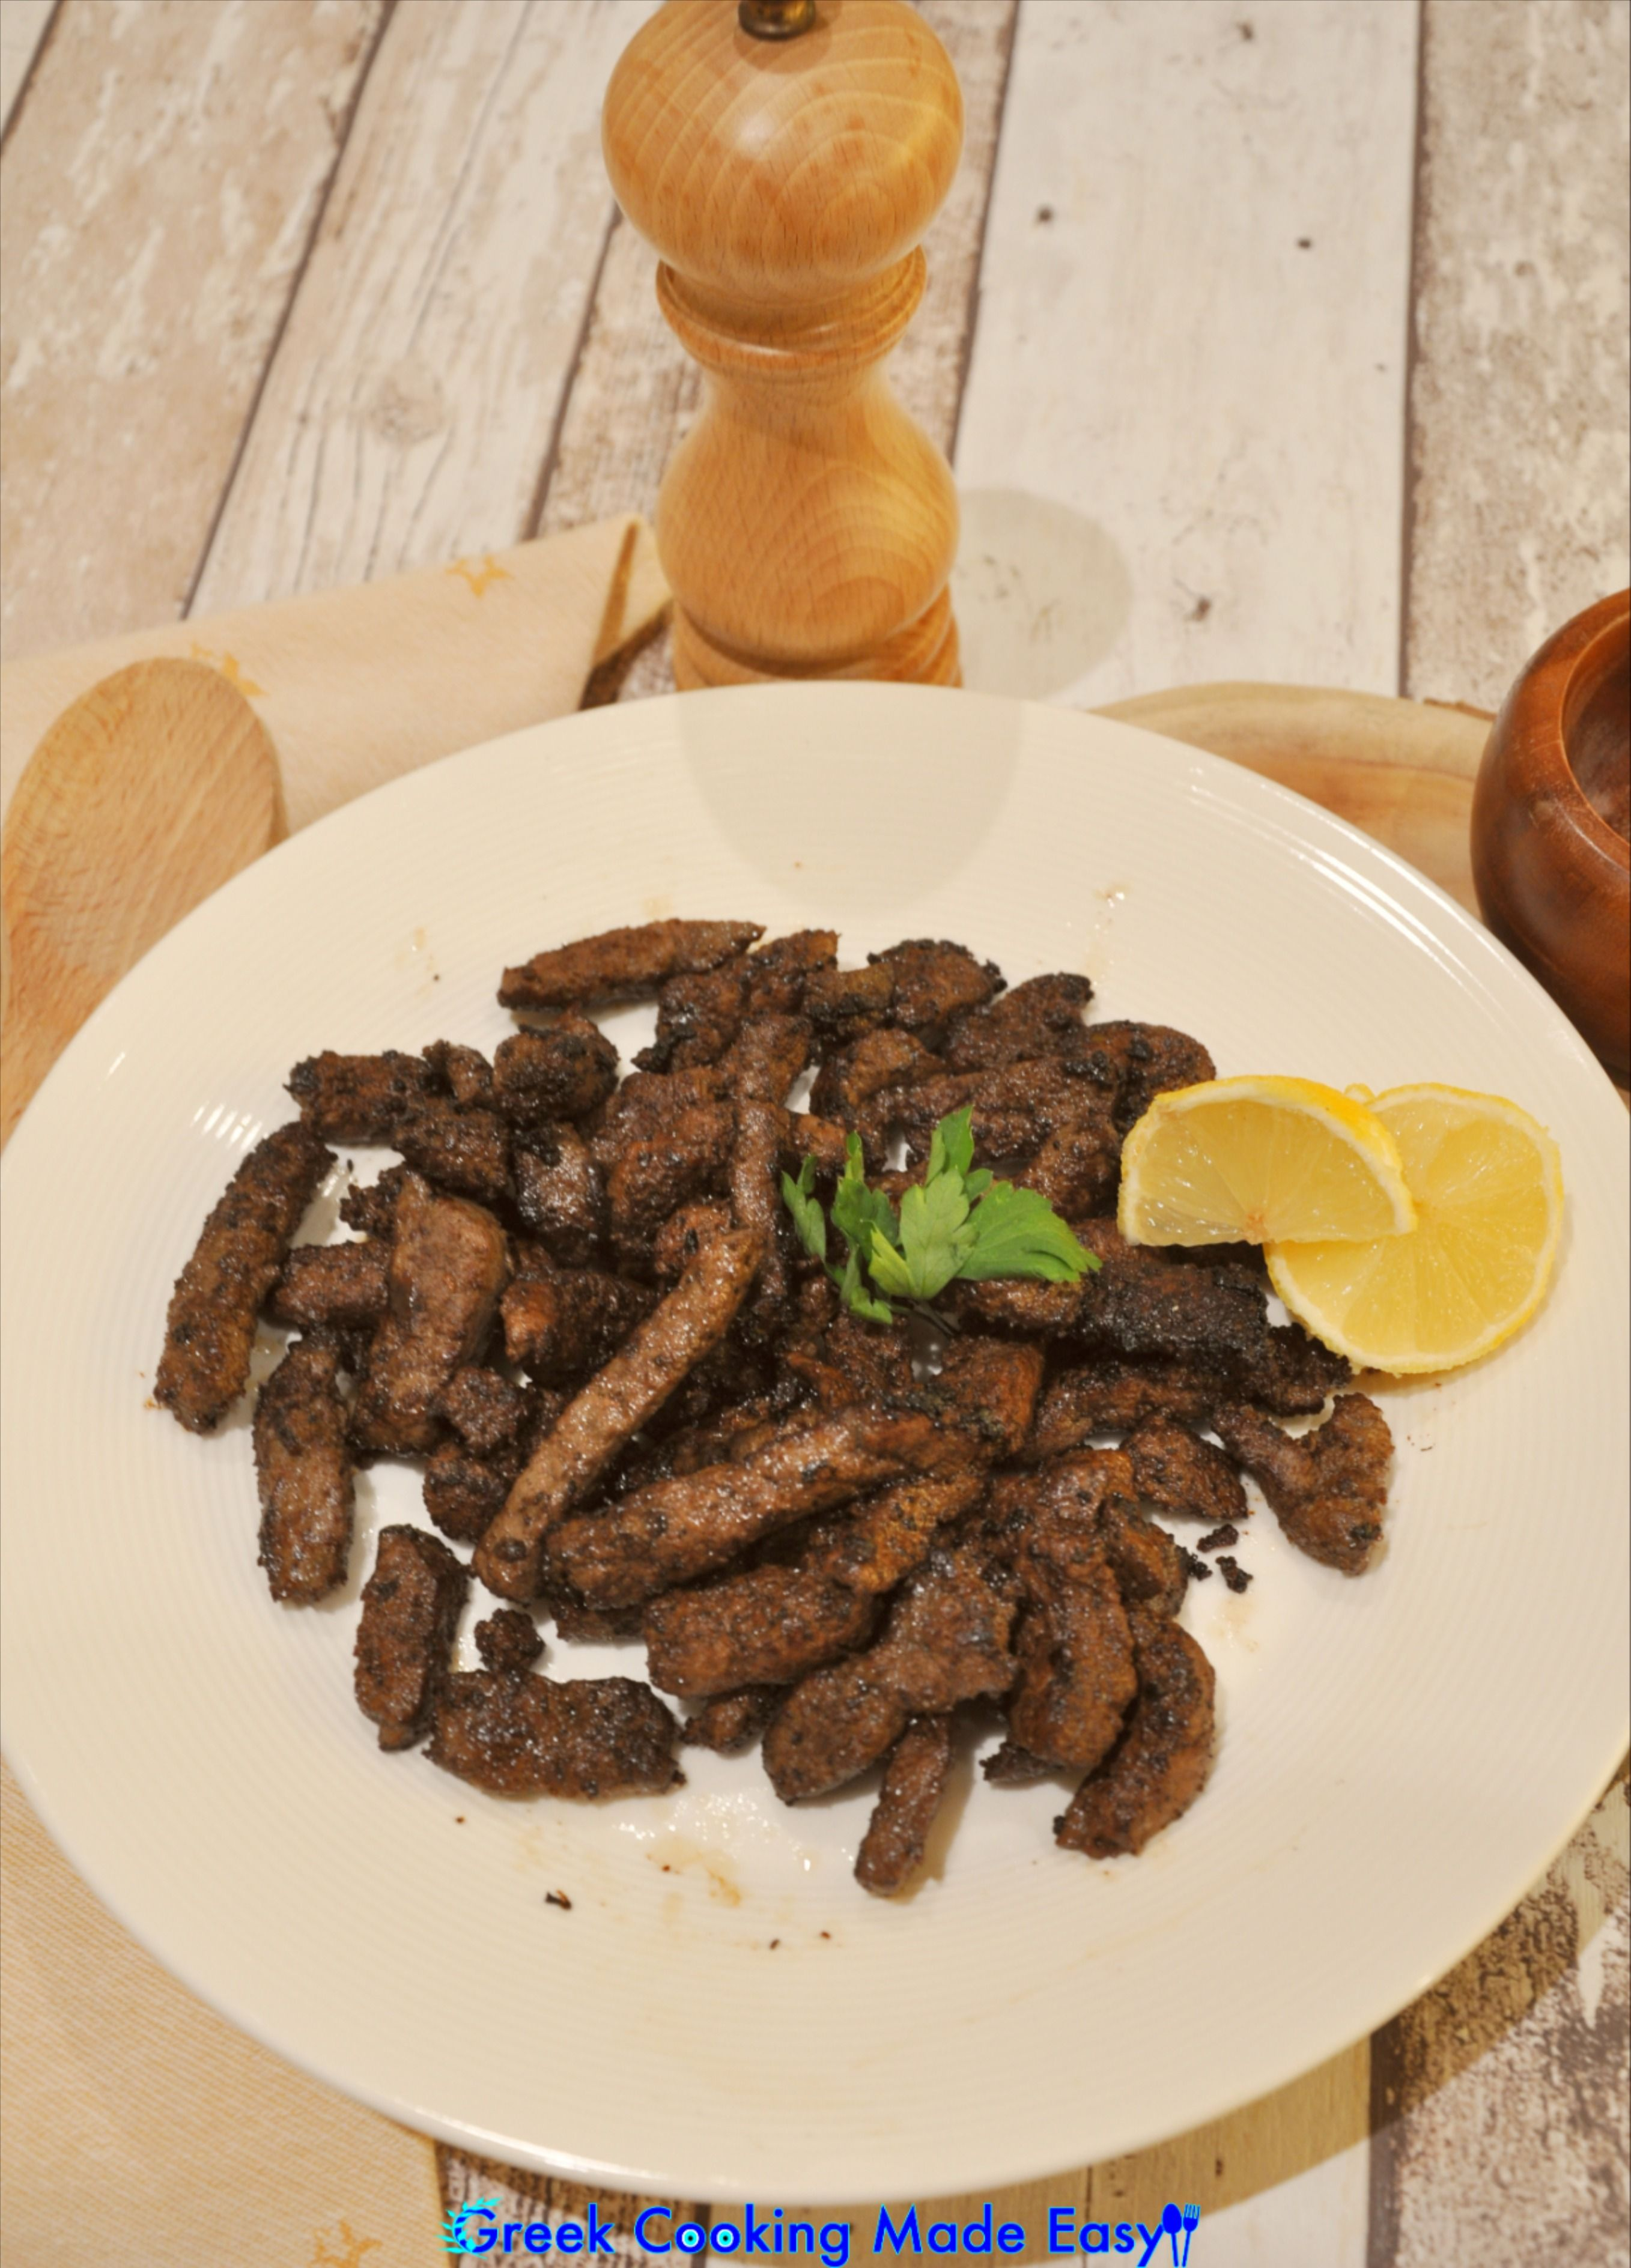 This is a non-Greek recipe that my beloved Mom shared with me. Livers are marinated with a spicy sauce and then fried, to give a superb & quite appetizing taste! If you're not sure that you enjoy eating liver, then try my Mom's very easy recipe & I bet you will change your mind! #egypt #liver #συκωτάκια #συκώτι #αίγυπτος #Foodbloggers #homemadefood #greece #greek #greekrecipes #hereismyfood #delicious #homecooking #συνταγες #greekcookingmadeeasy #love #mediterraneandiet #madebyme #likemygrandma